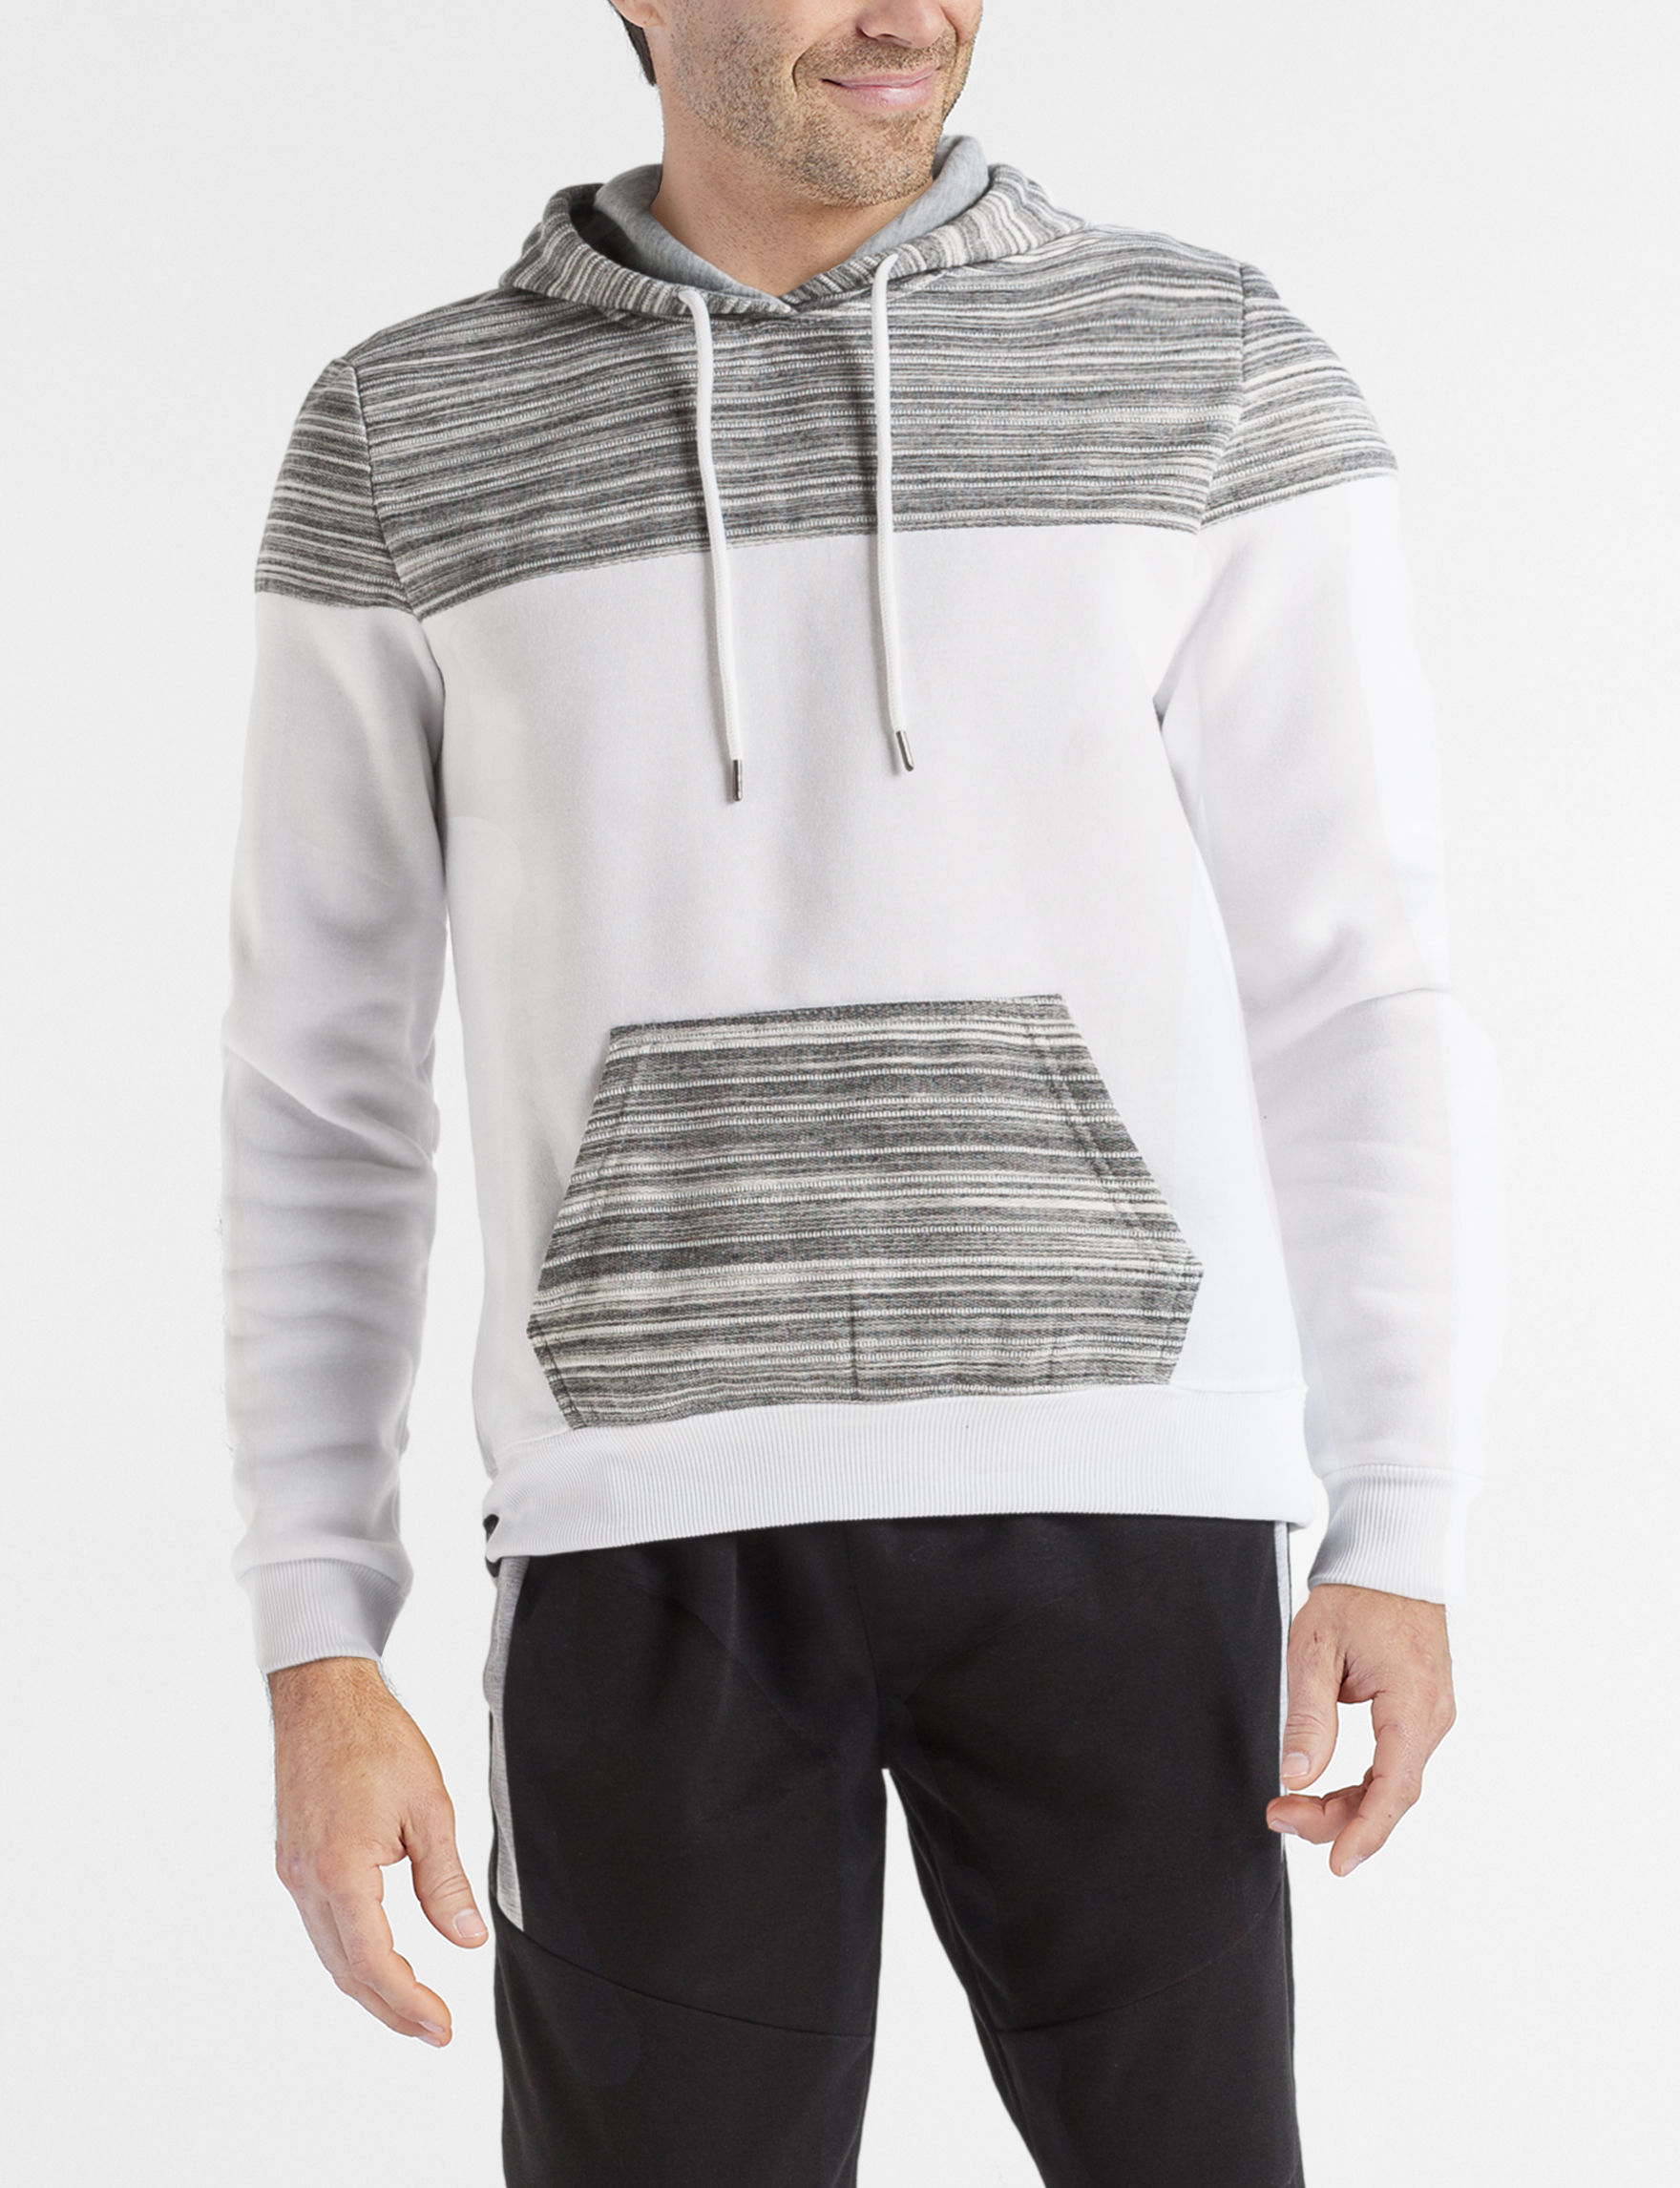 Brooklyn Standard White / Grey Pull-overs Zip-Ups